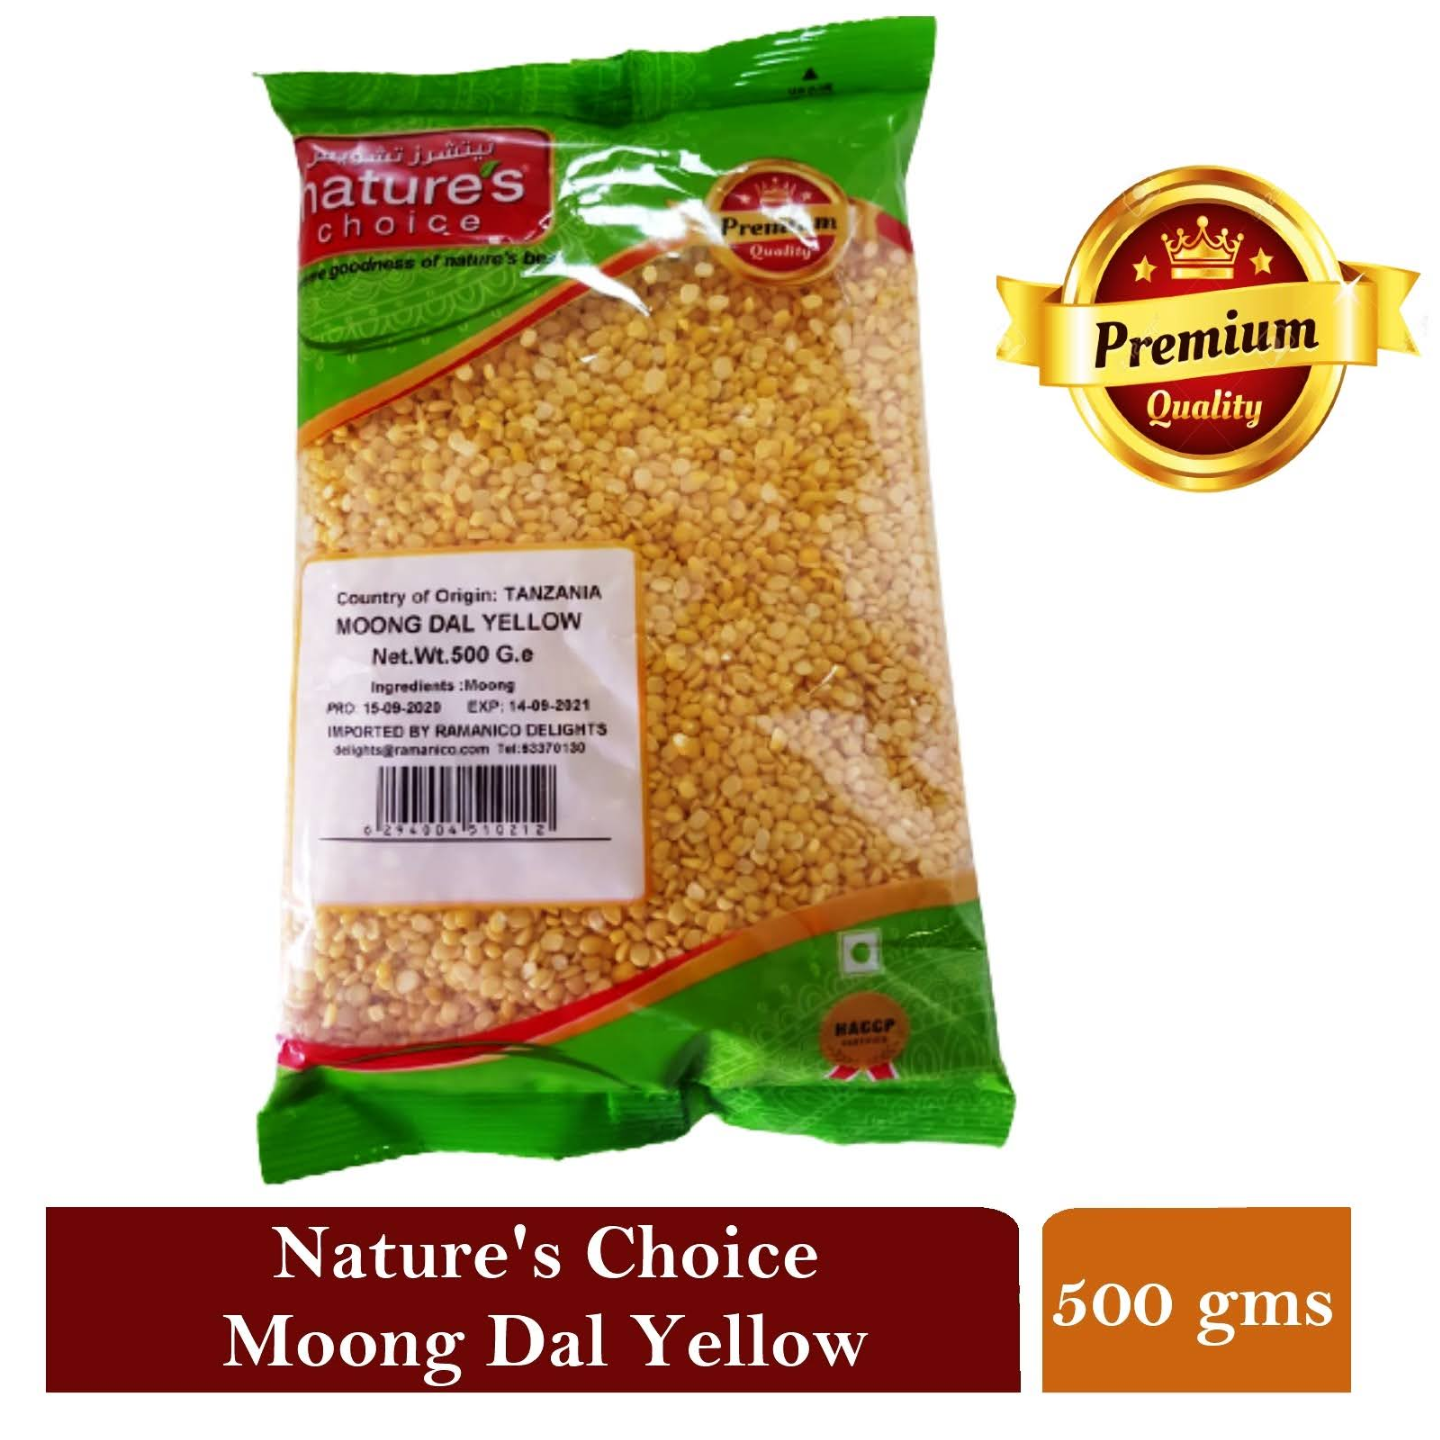 NATURES CHOICE PREMIUM QUALITY MOONG DAL YELLOW 500G